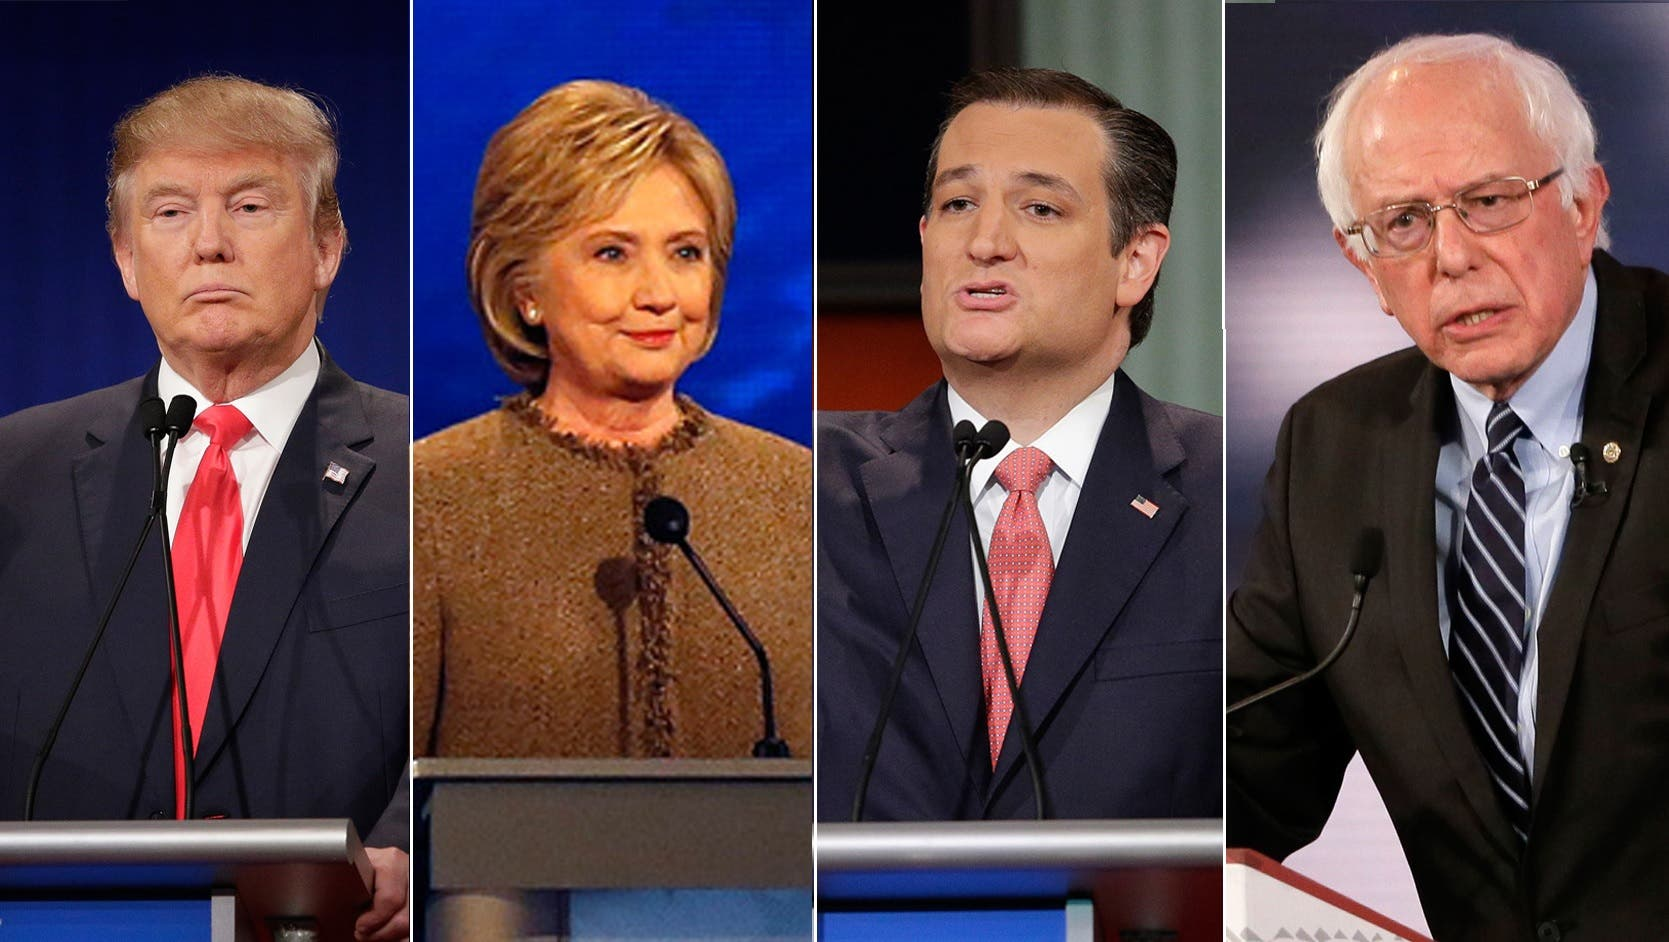 (L-R) US presidential candidates Donald Trump, Hillary Clinton, Ted Cruz, Bernie Sanders. (File photos: Reuters, AP, AFP)